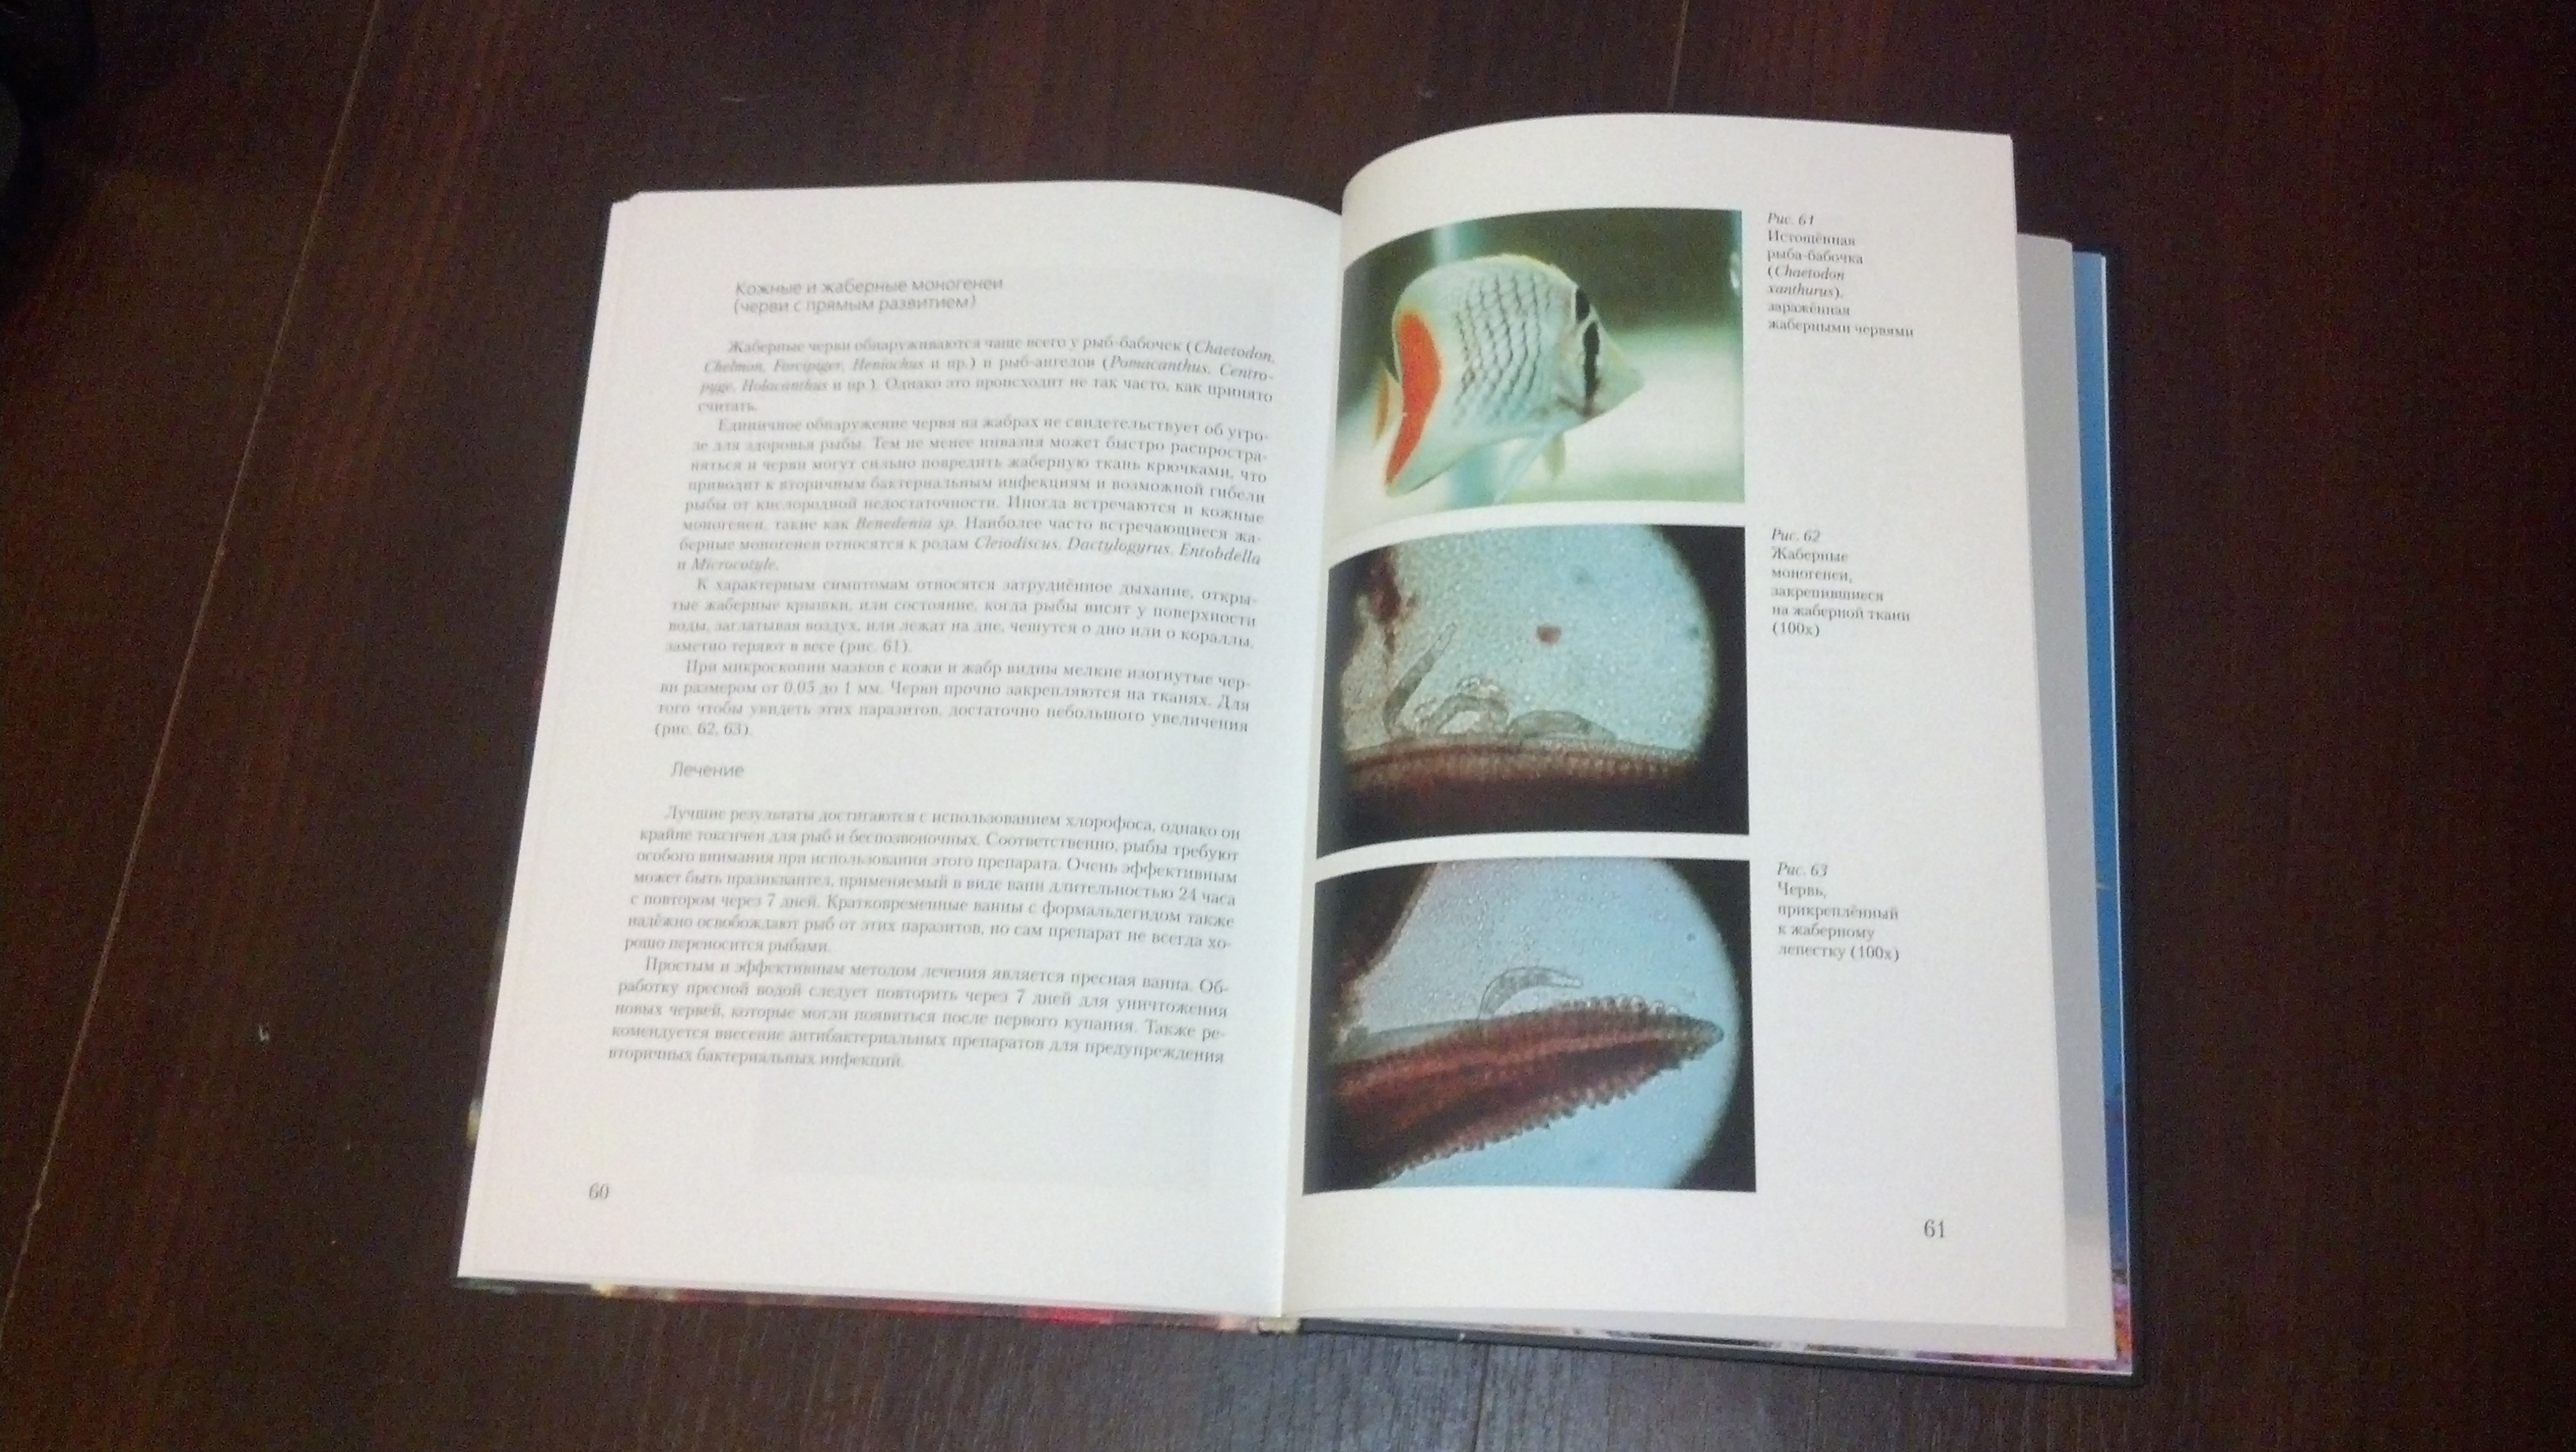 Russian book The Practical guide to fish diseases opened on page 61